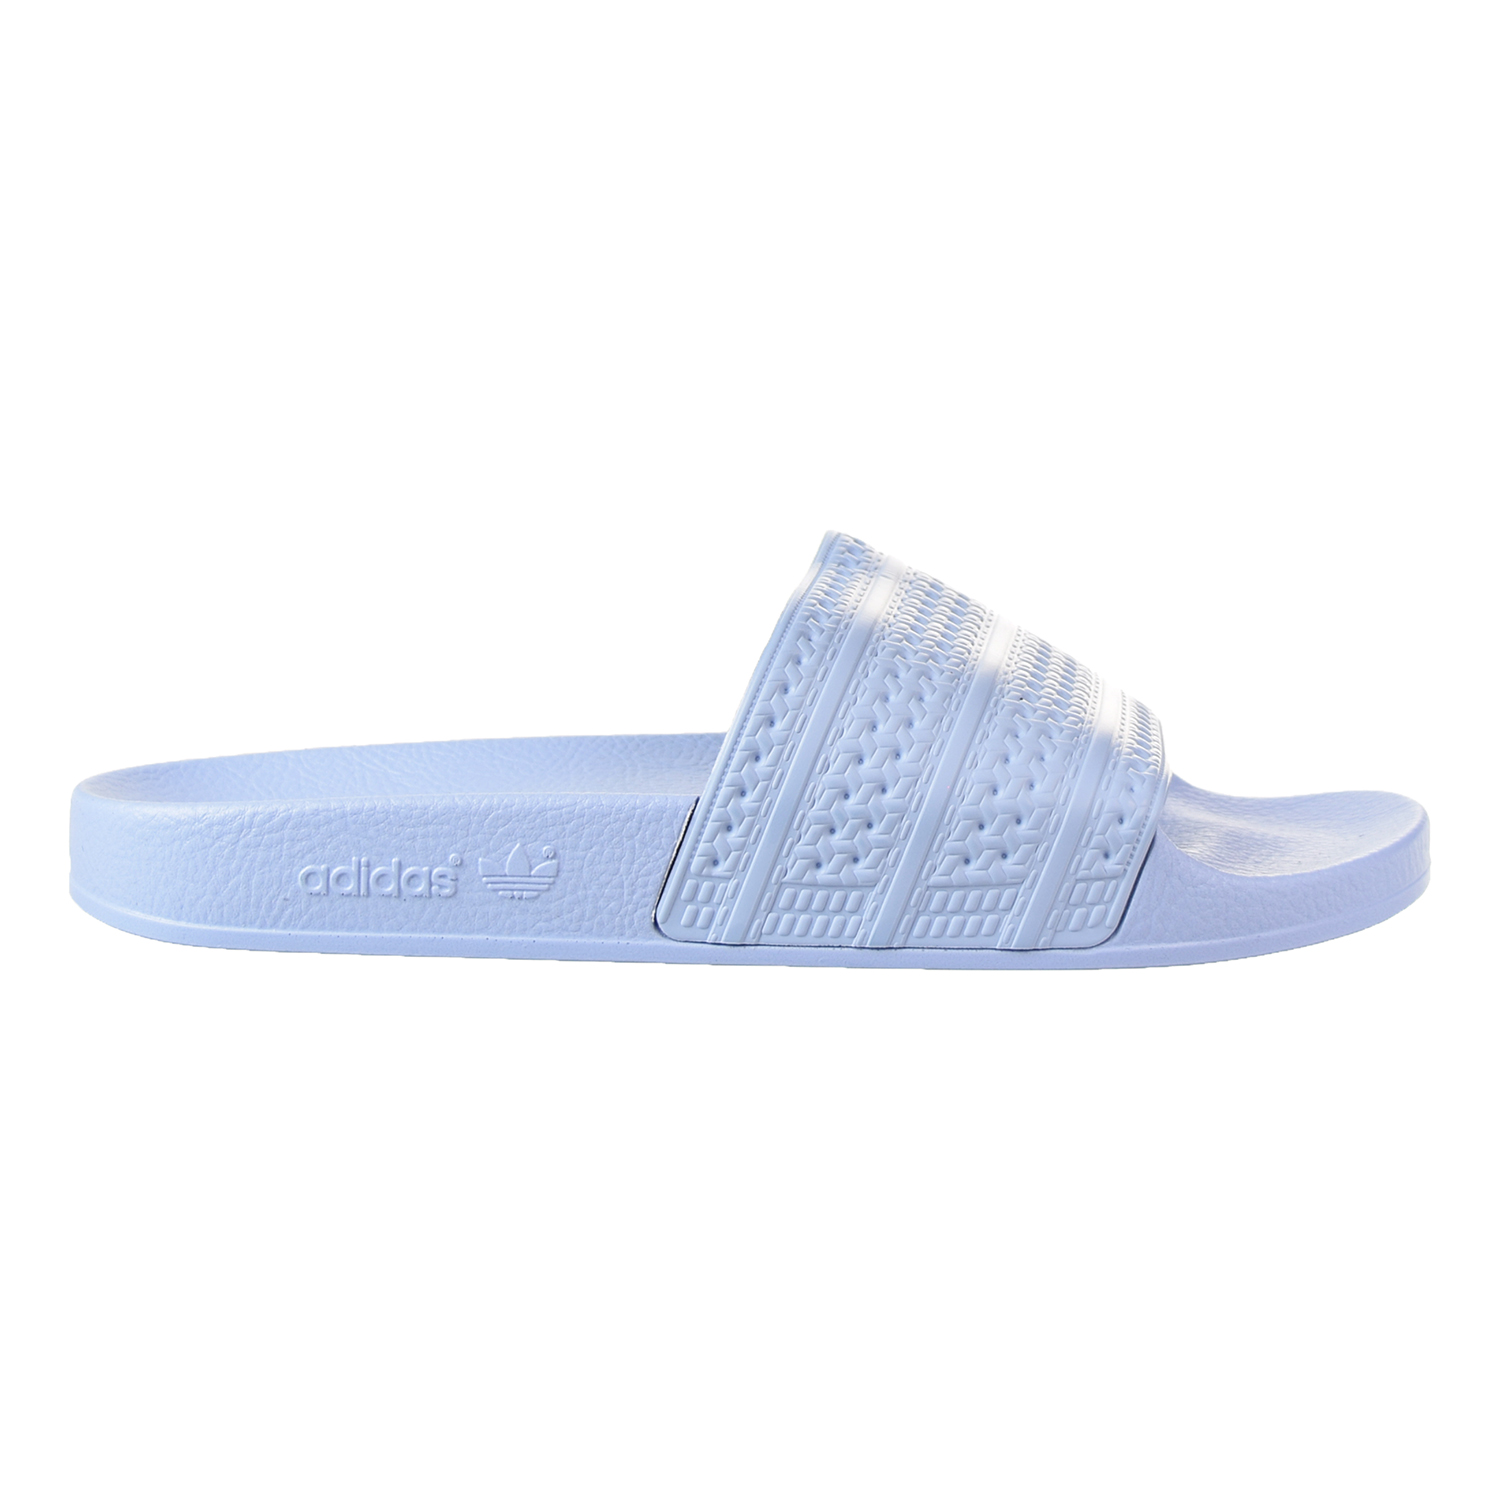 Adidas Adilette Men's Slides Colour Easblu Easblu ba7539 by Adidas